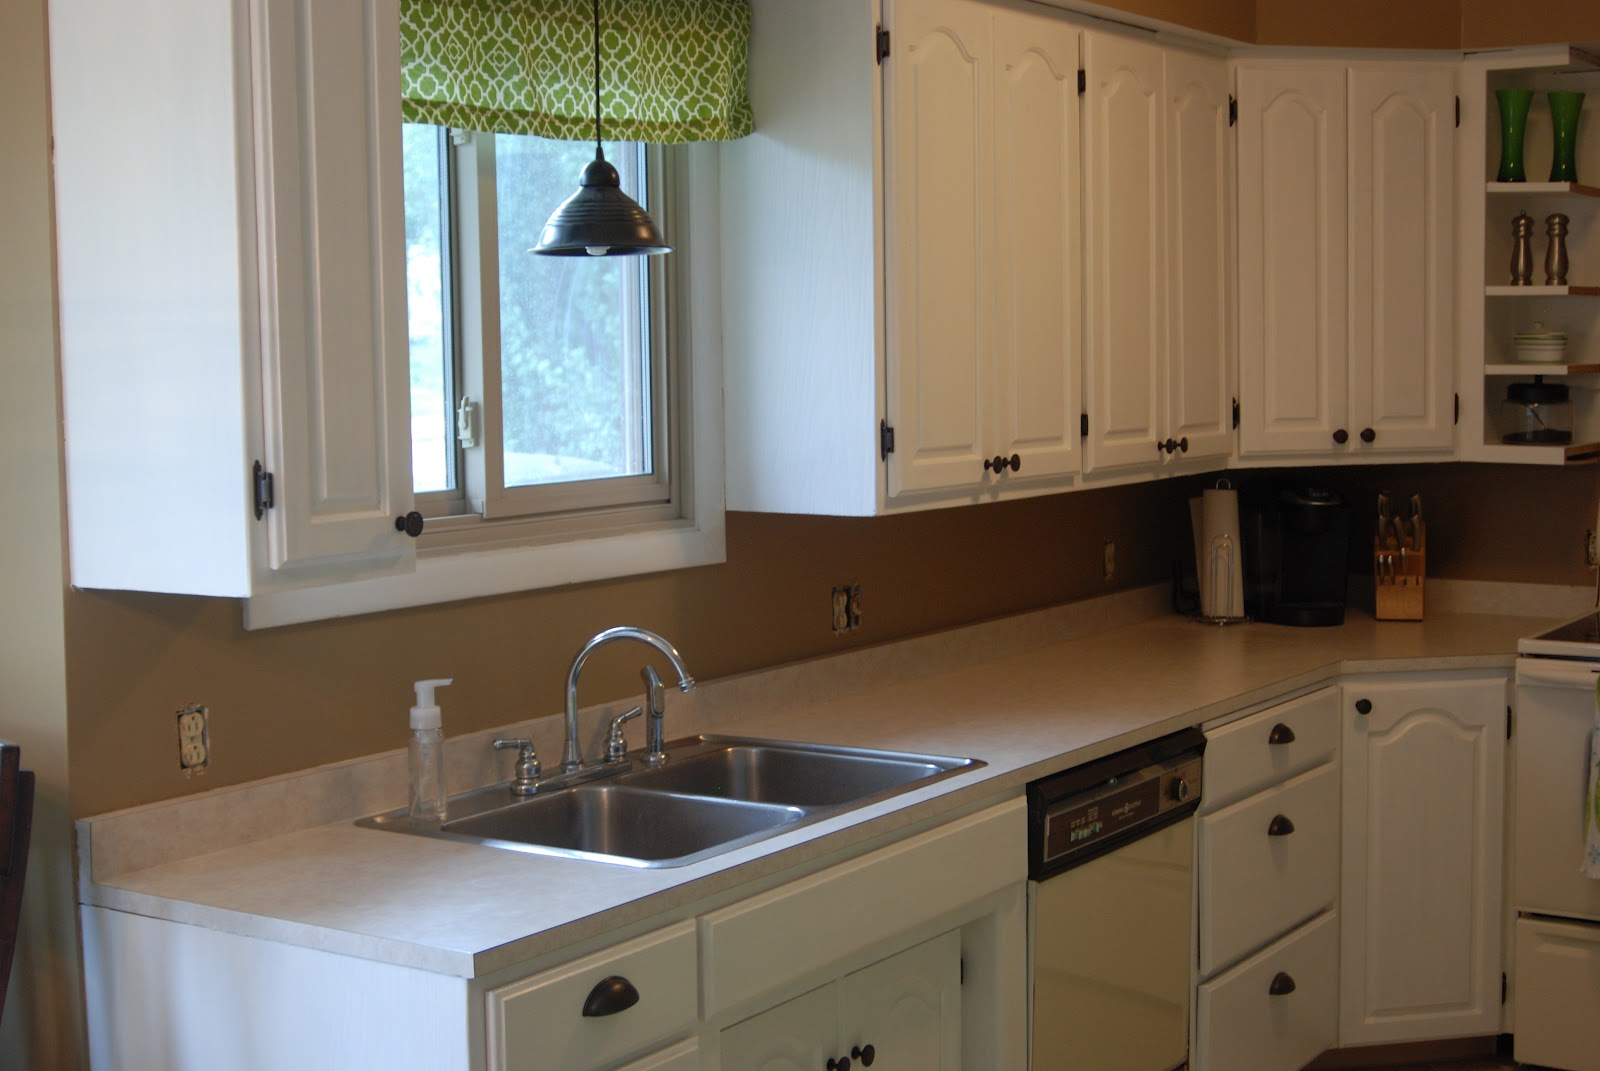 Rustoleum Countertop Paint Review Is It Any Good My Blog Ask Home ...